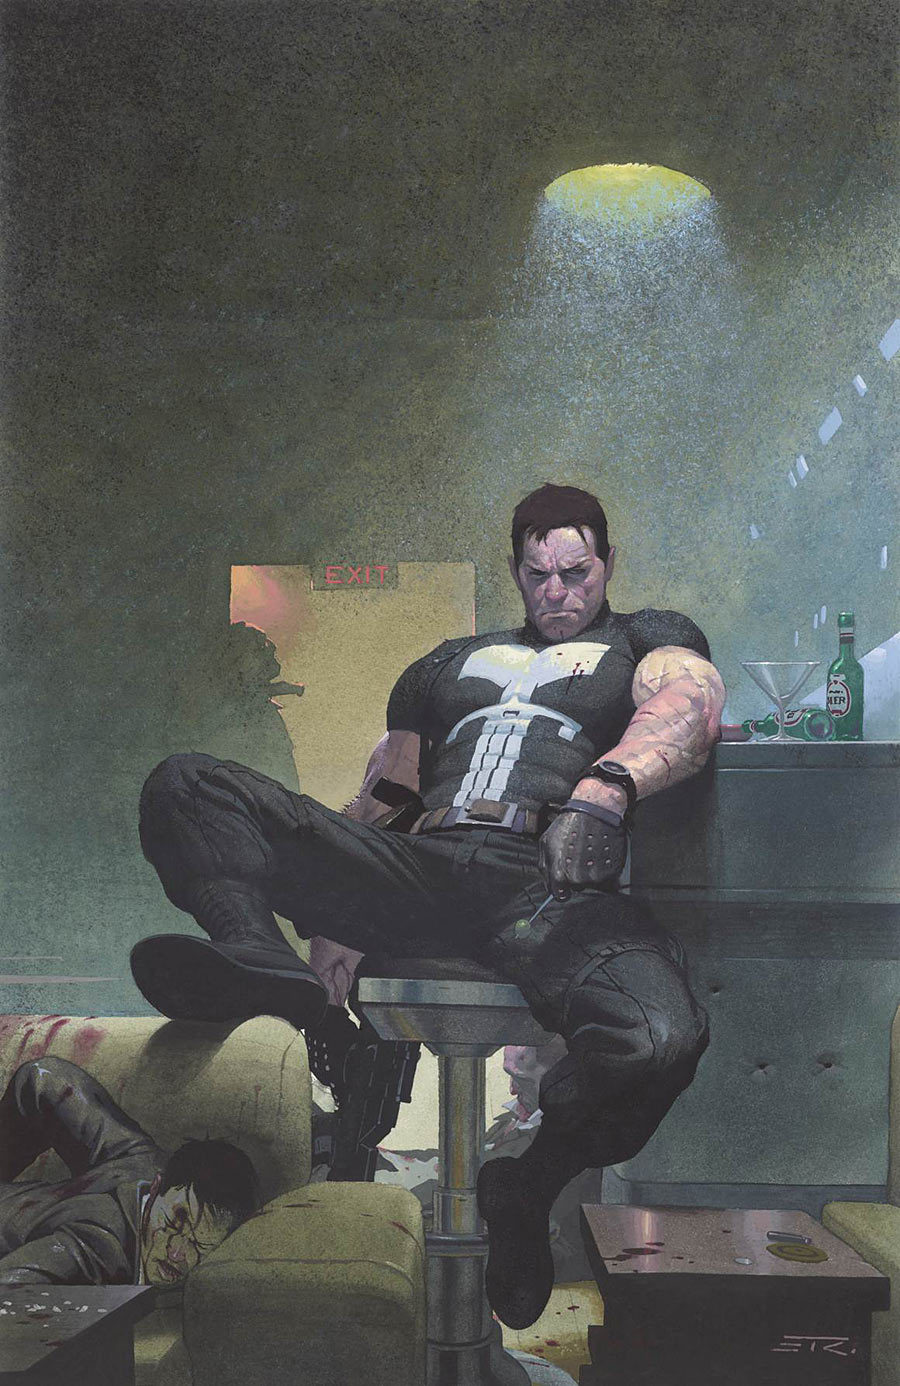 Market Monday Untold Tales of the Punisher MAX #3, written by Megan Abbott  Acclaimed crime novelist and Edgar Award winner MEGAN ABBOTT (Queenpin, The End of Everything) takes on the Punisher!  ~Preview~ Interview with Megan Abbott I read Queenpin last month and it was incredible, will definitely be picking up this issue!